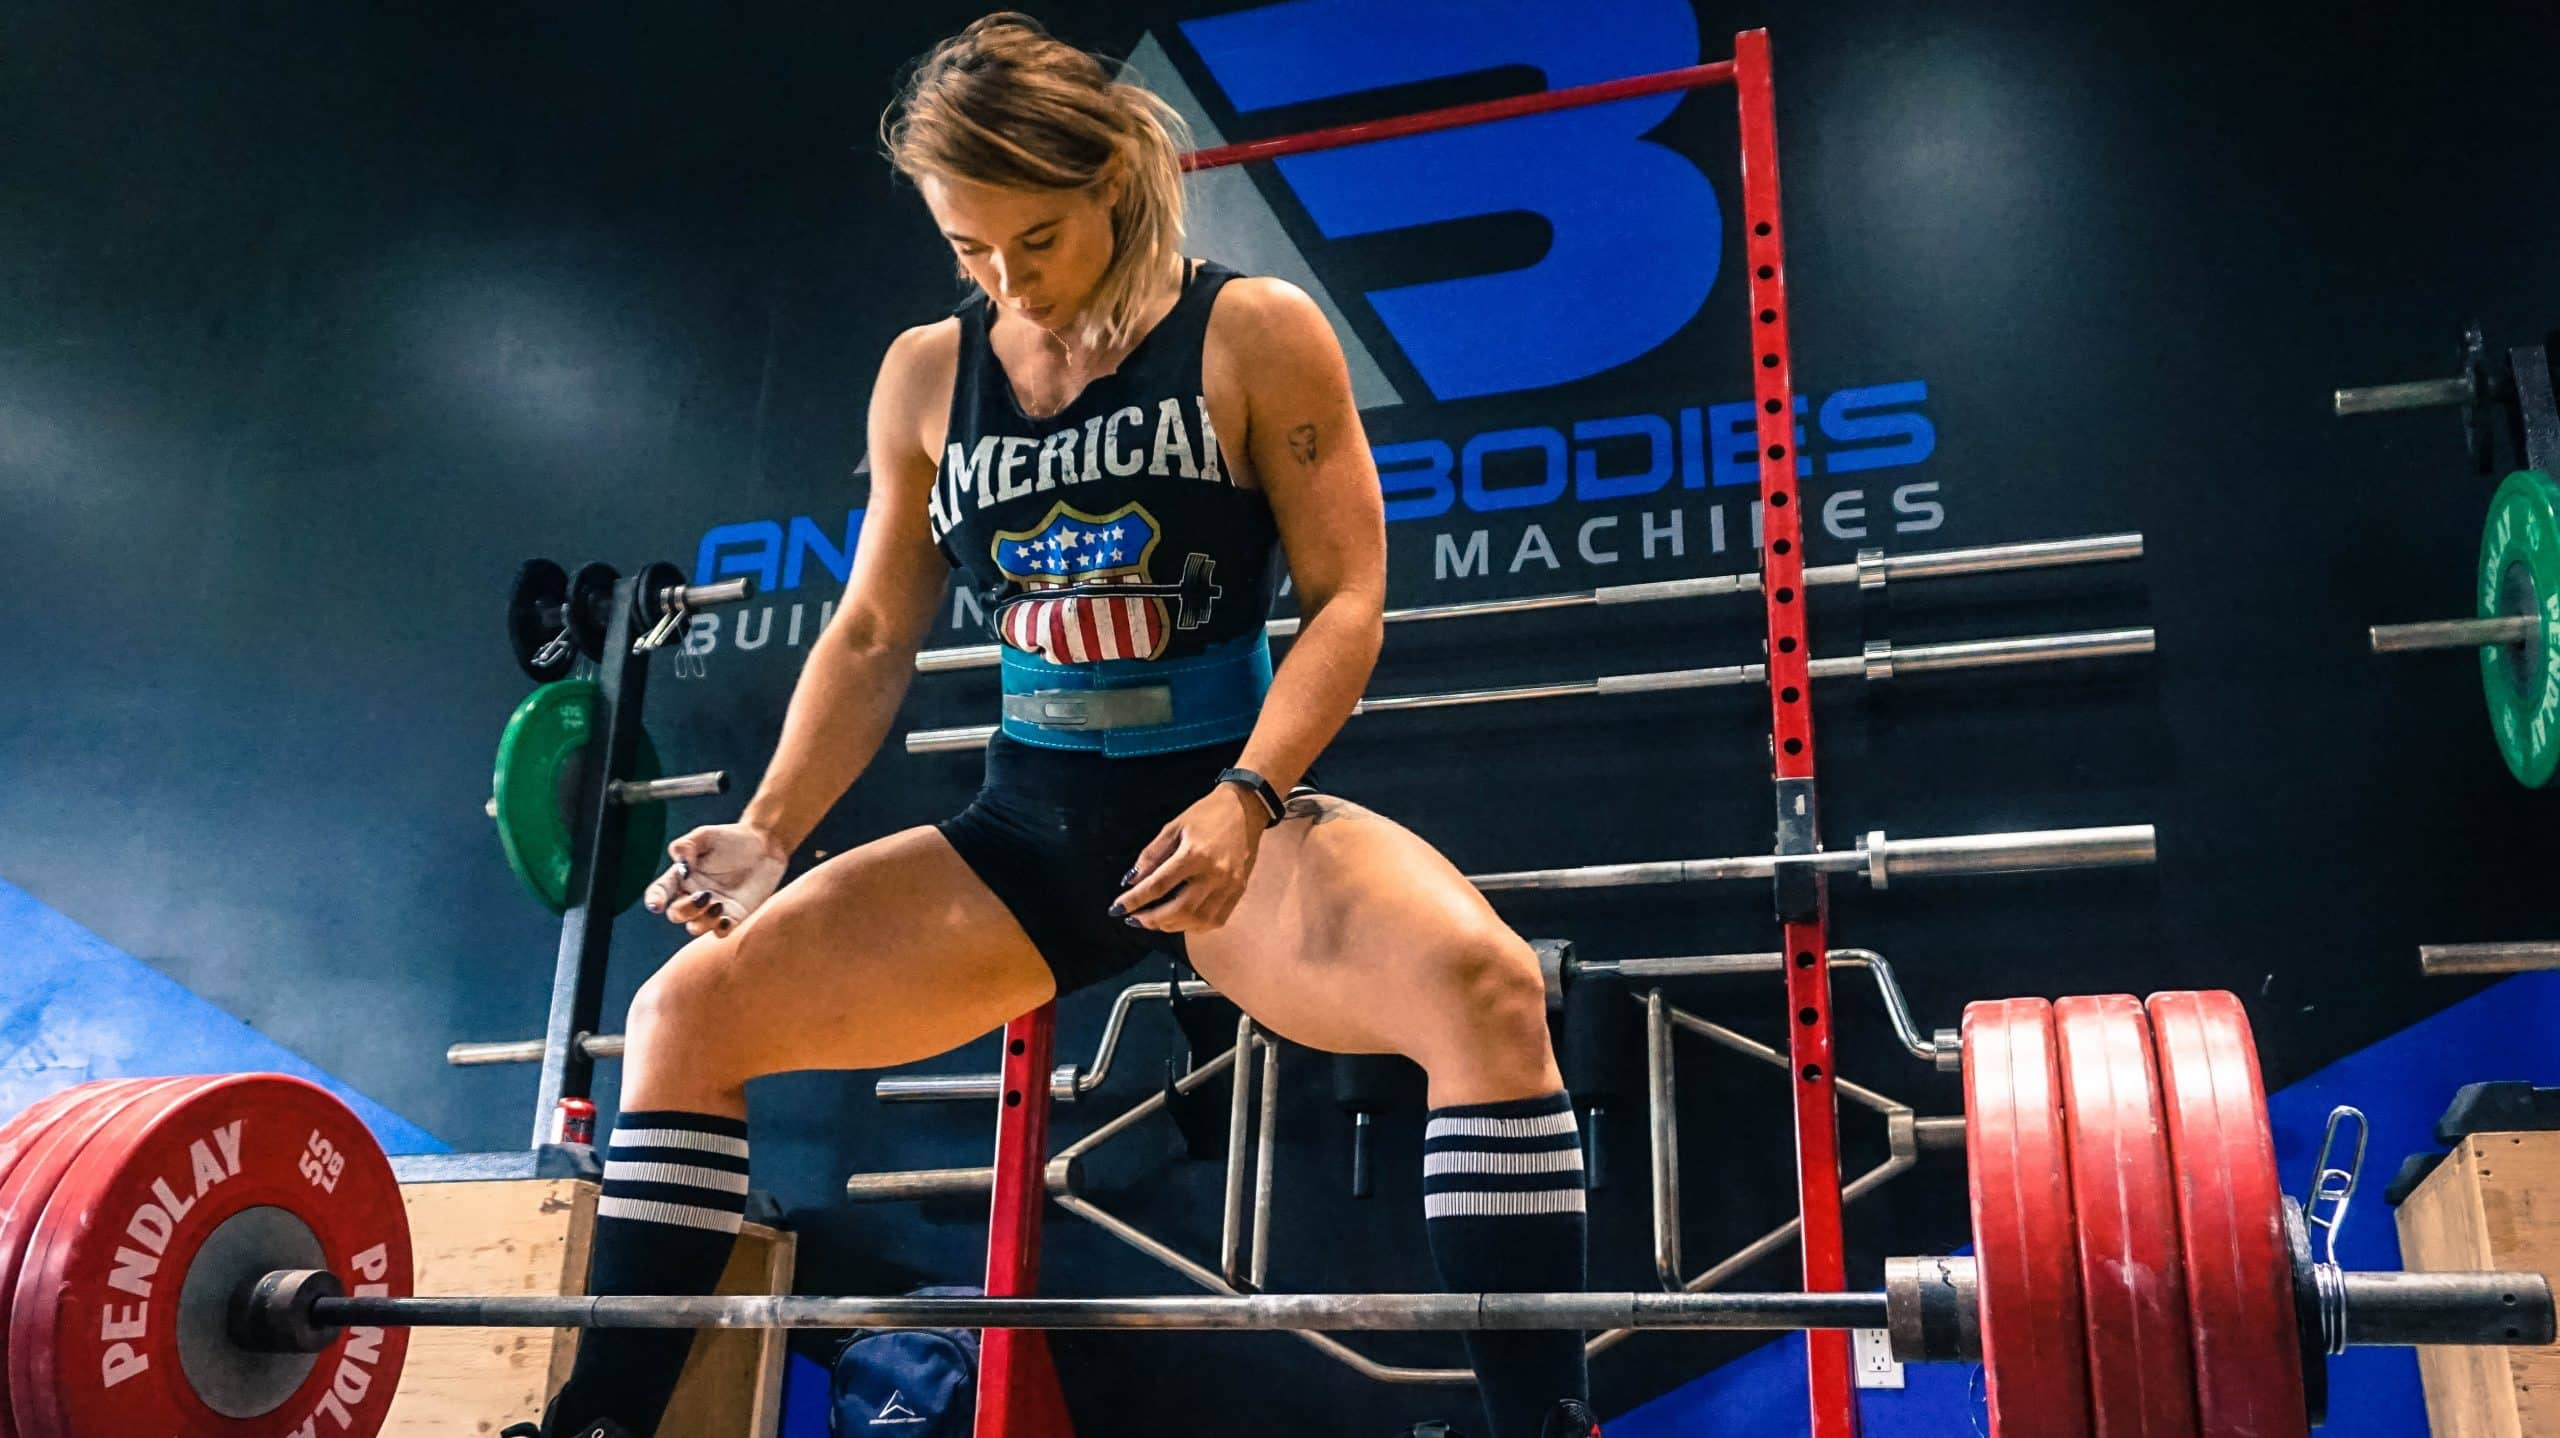 Woman about to lift with a lifting belt